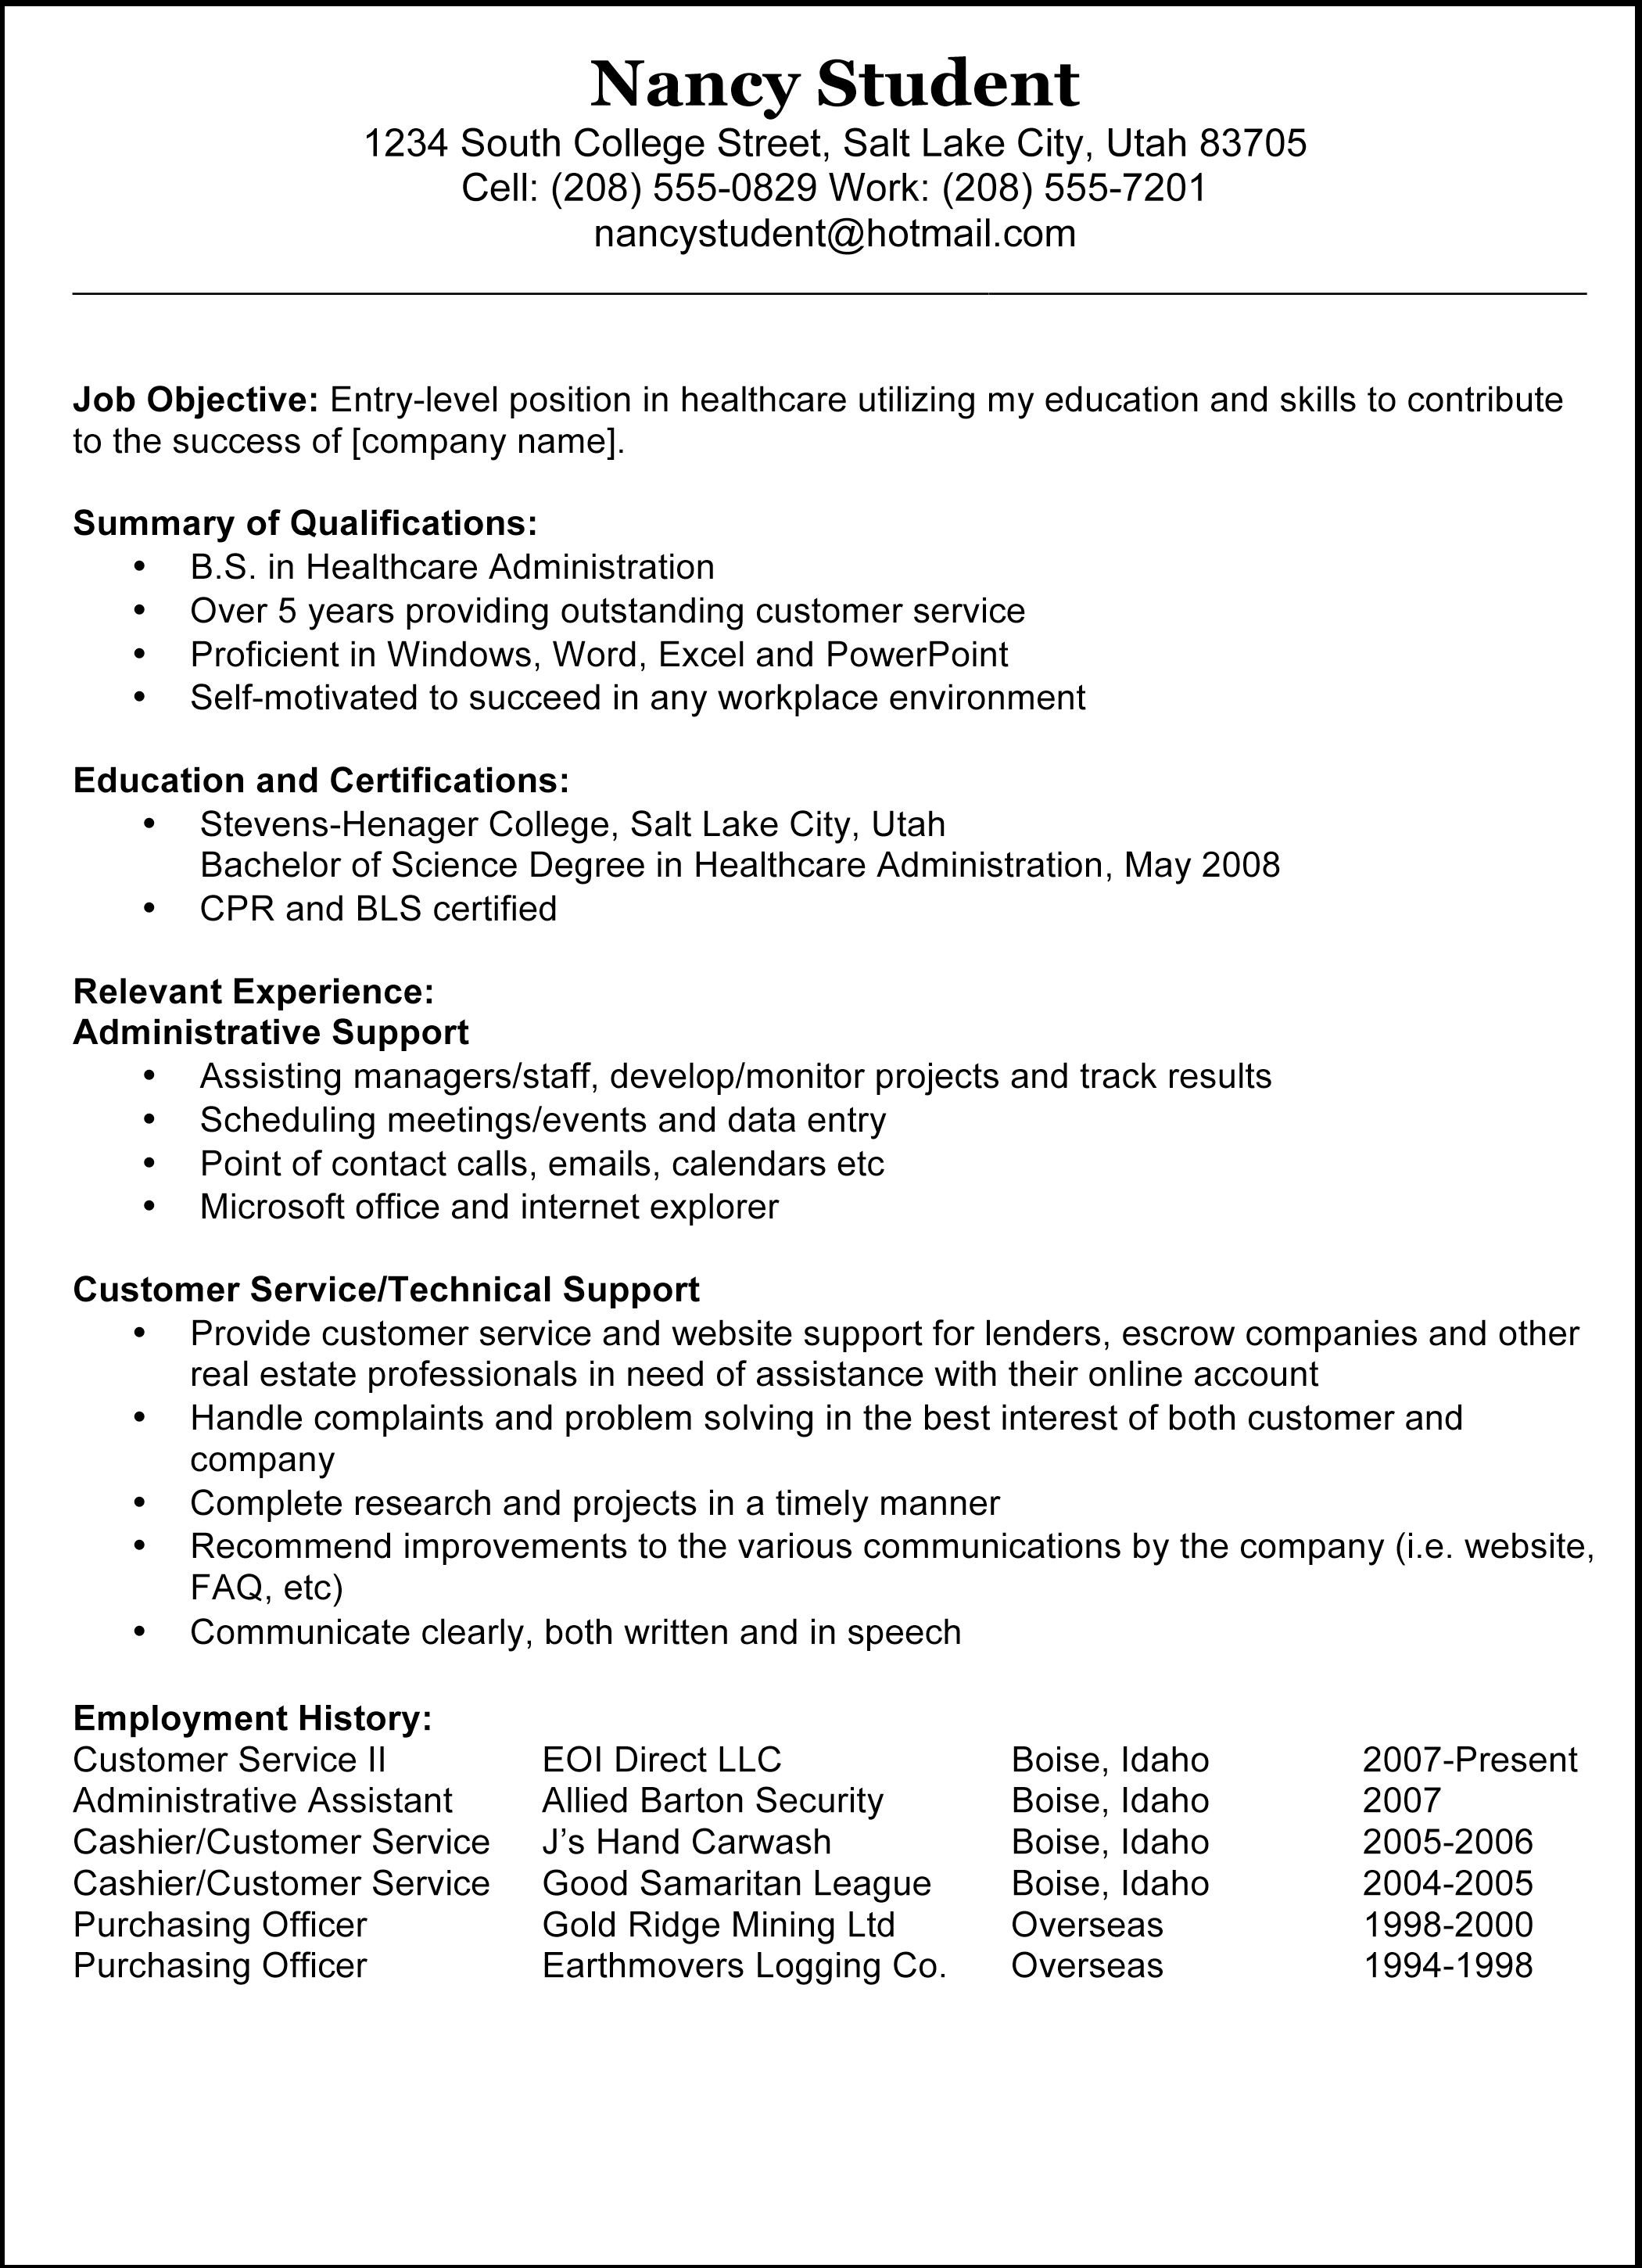 Copy Of 2014 Resume Sample | Click On The Document For An Editable Copy